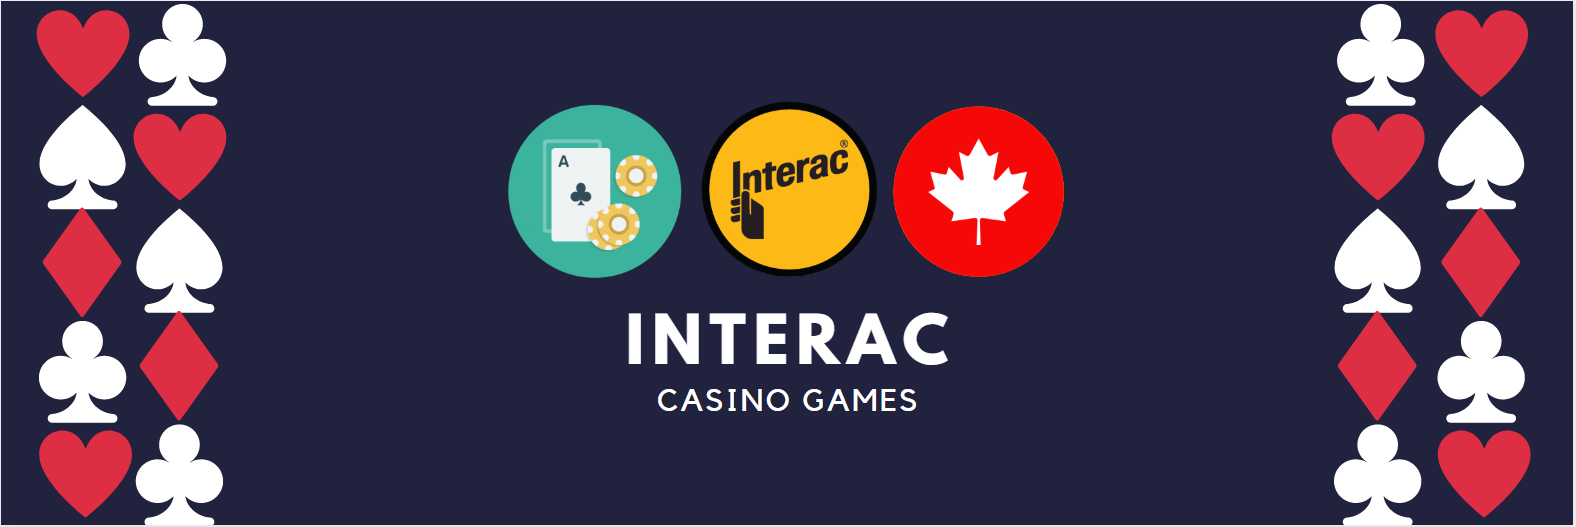 Interac Casino Games for Canadian gamblers